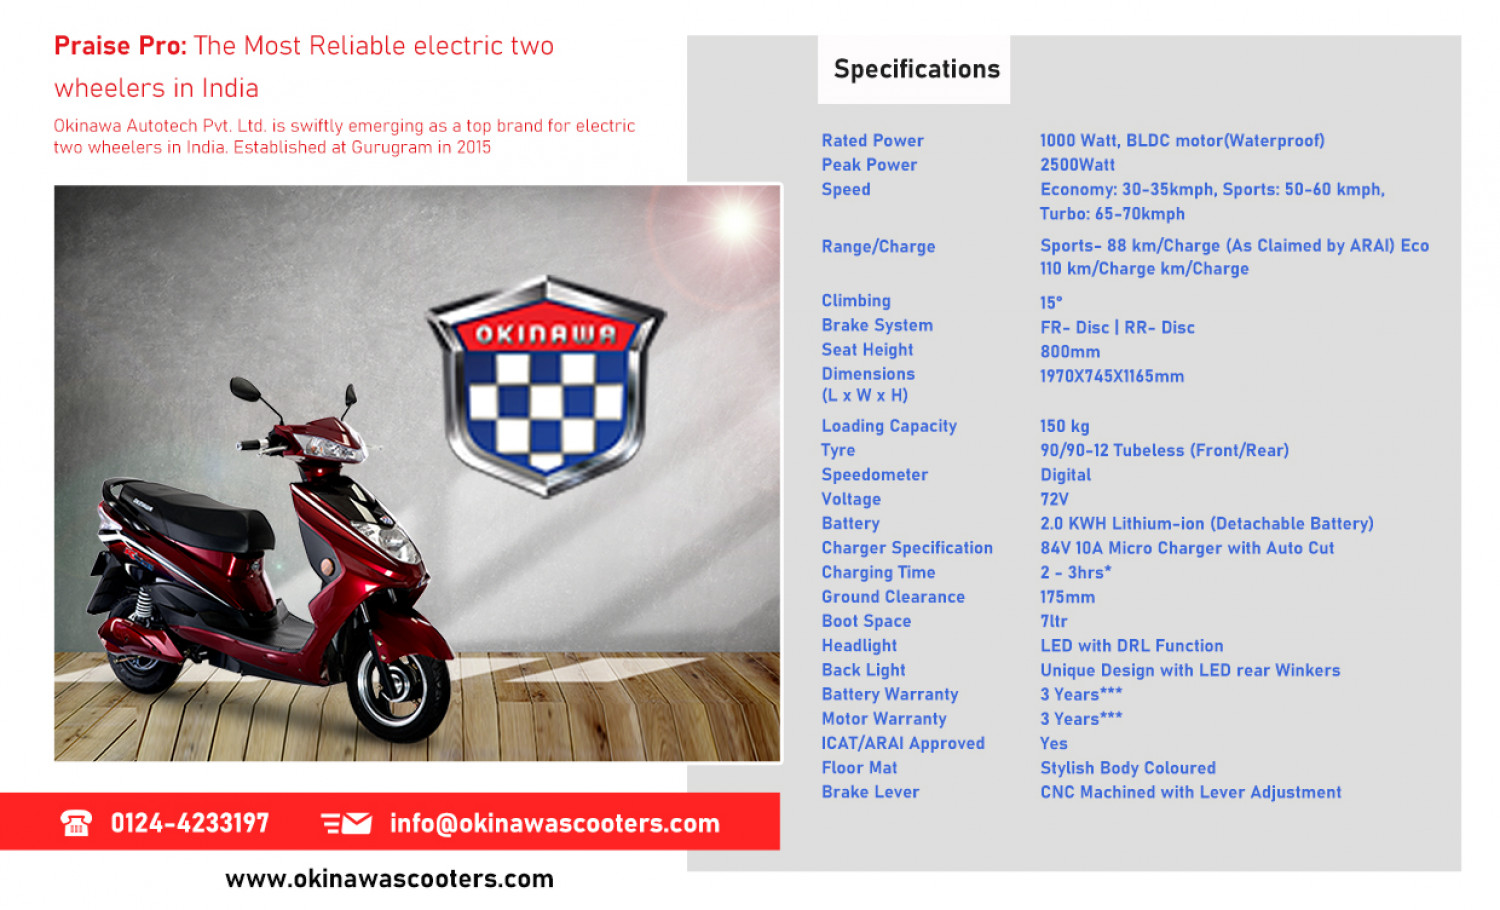 Most Reliable Electric Two Wheelers in India Infographic